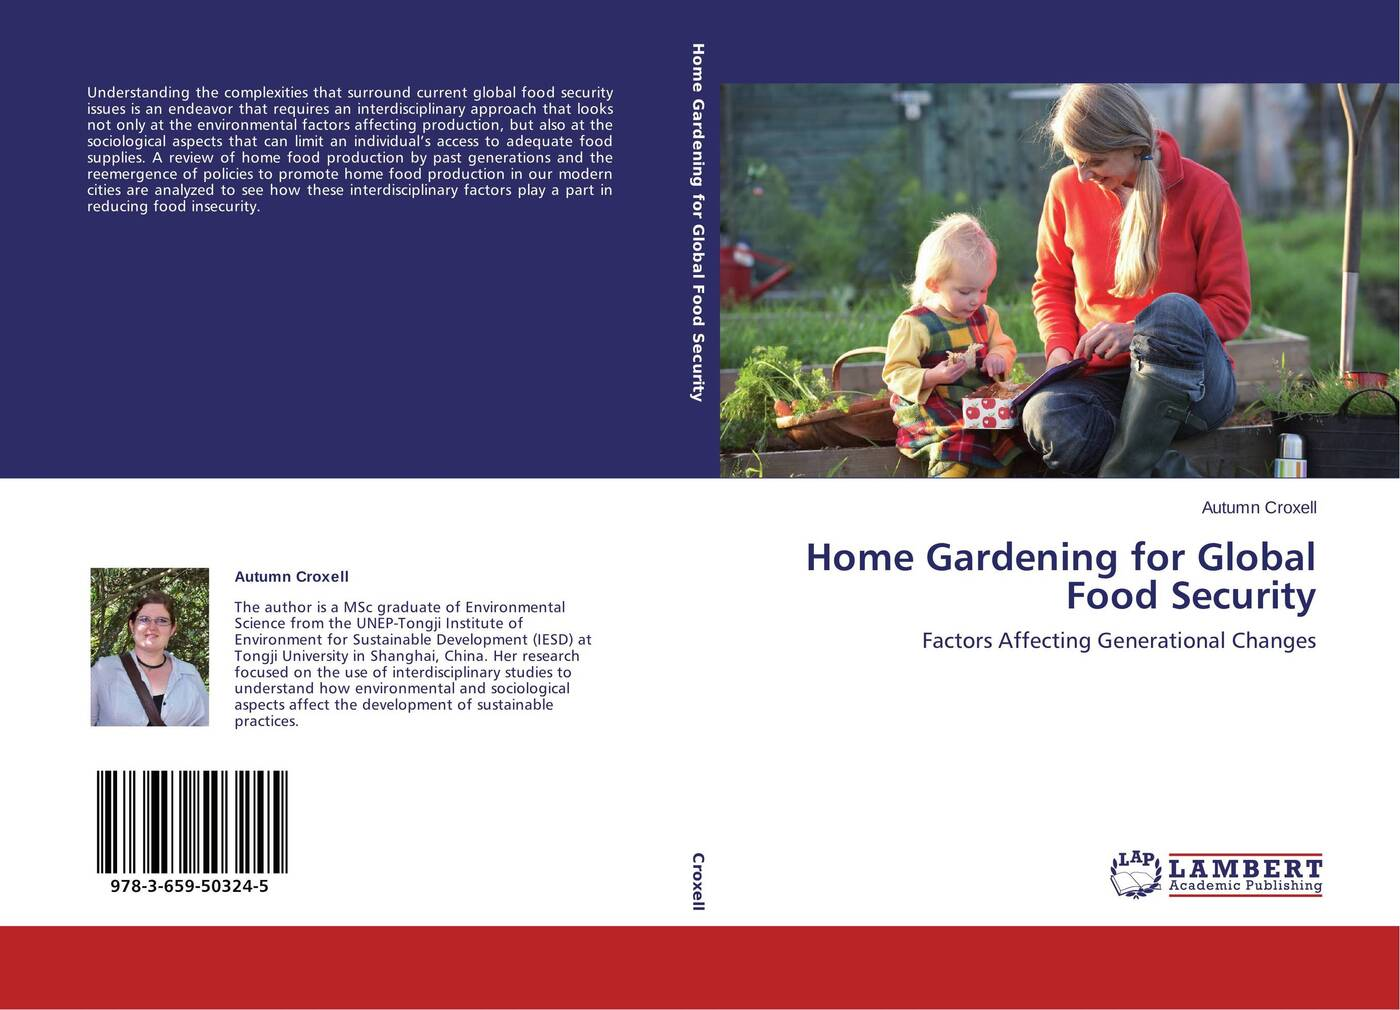 Autumn Croxell Home Gardening for Global Food Security wayne martindale global food security and supply